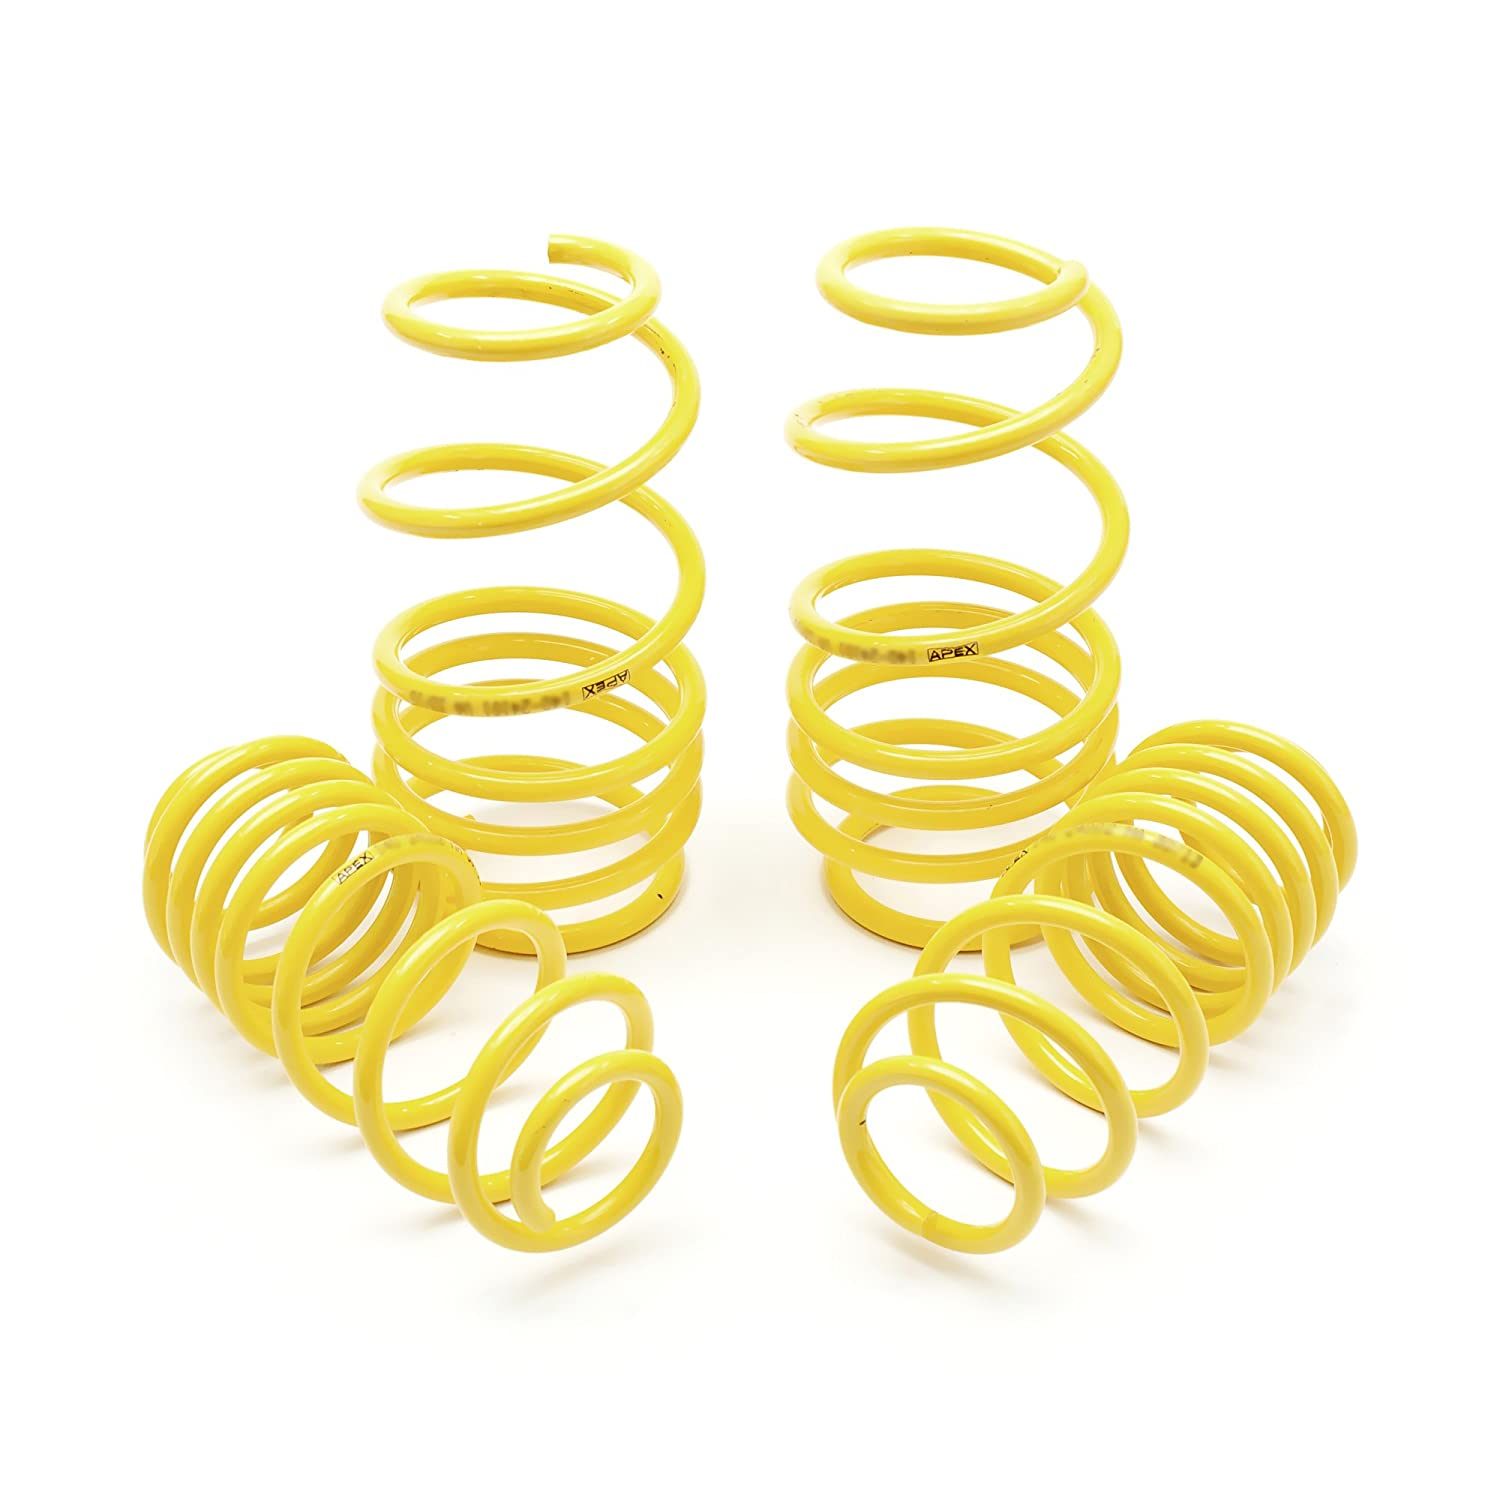 Apex 40-4300 Lowering Springs